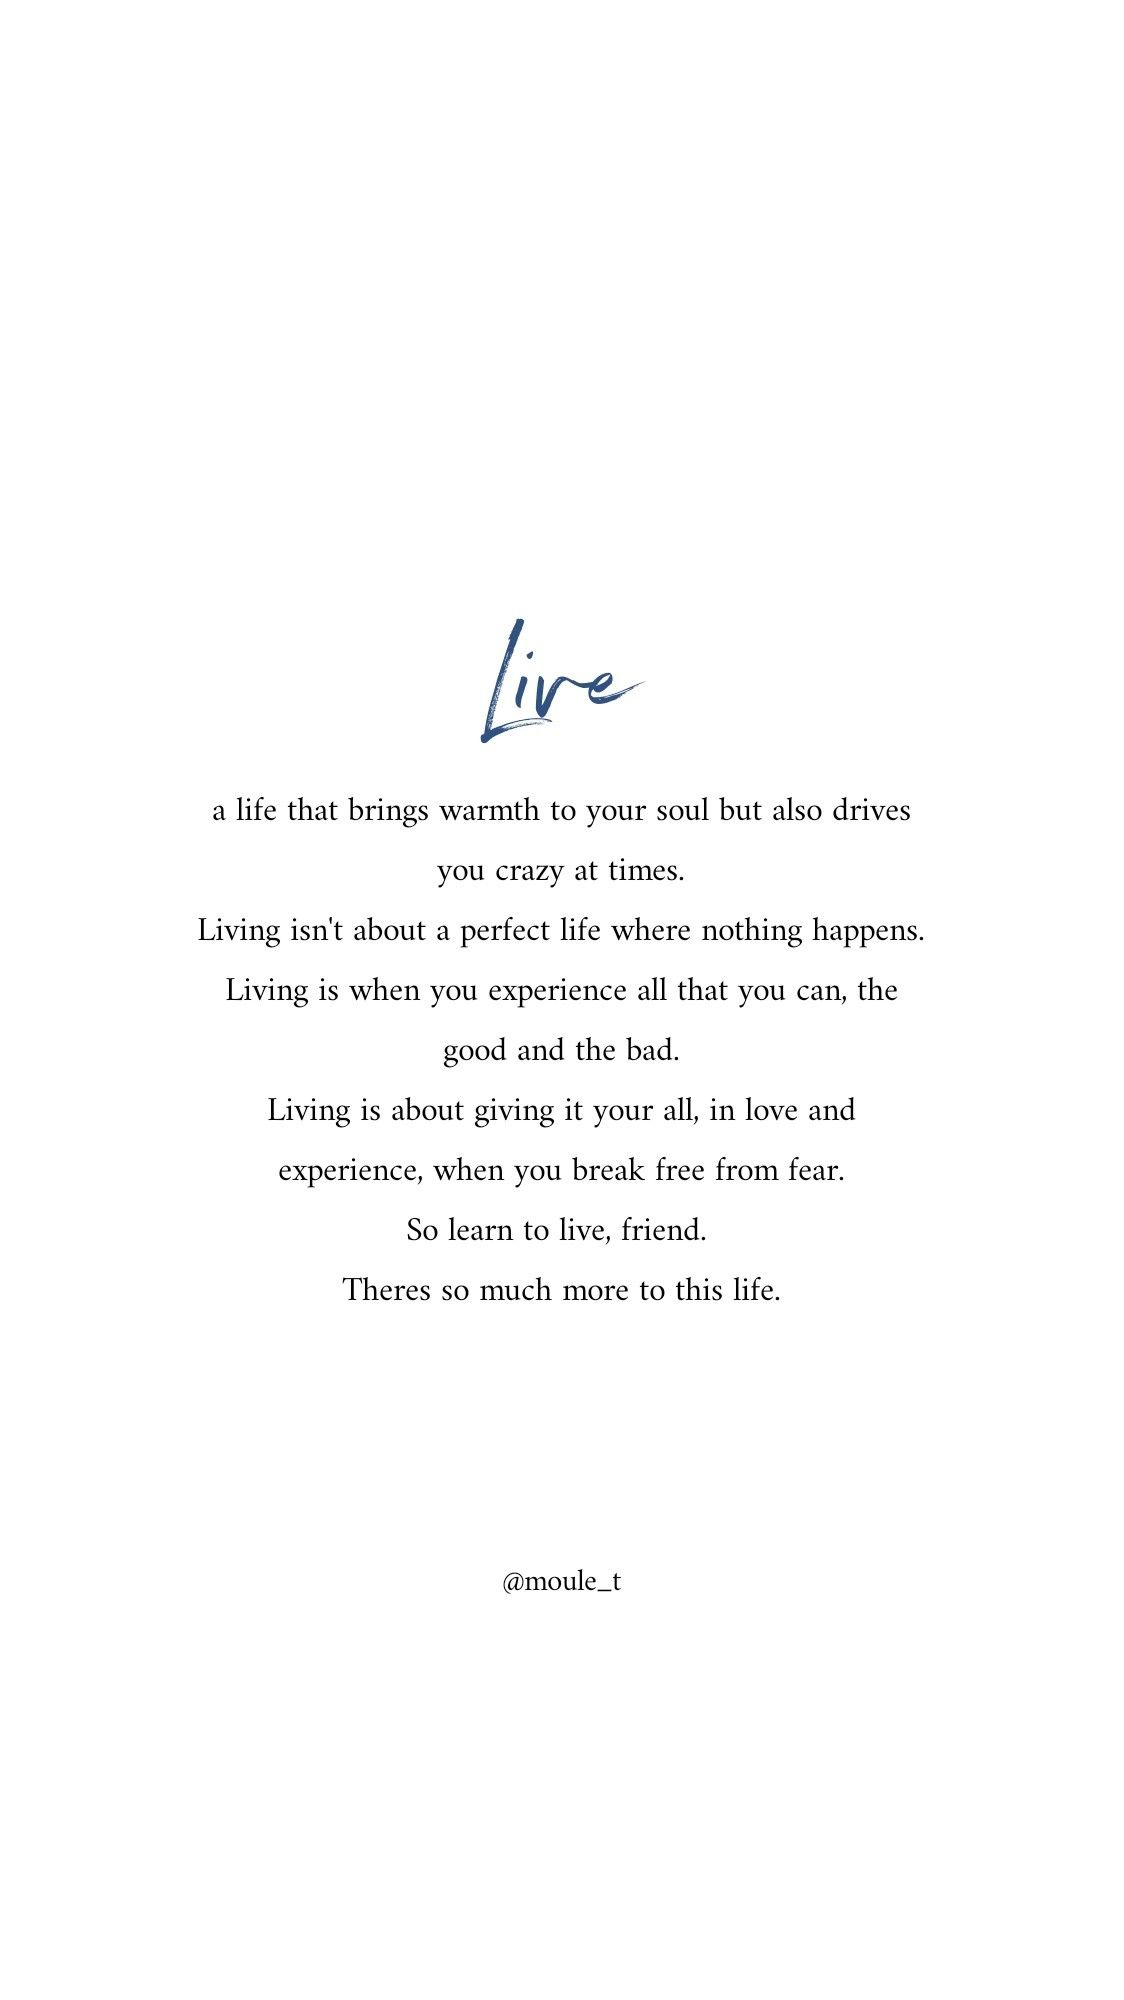 Live a life outside of fear